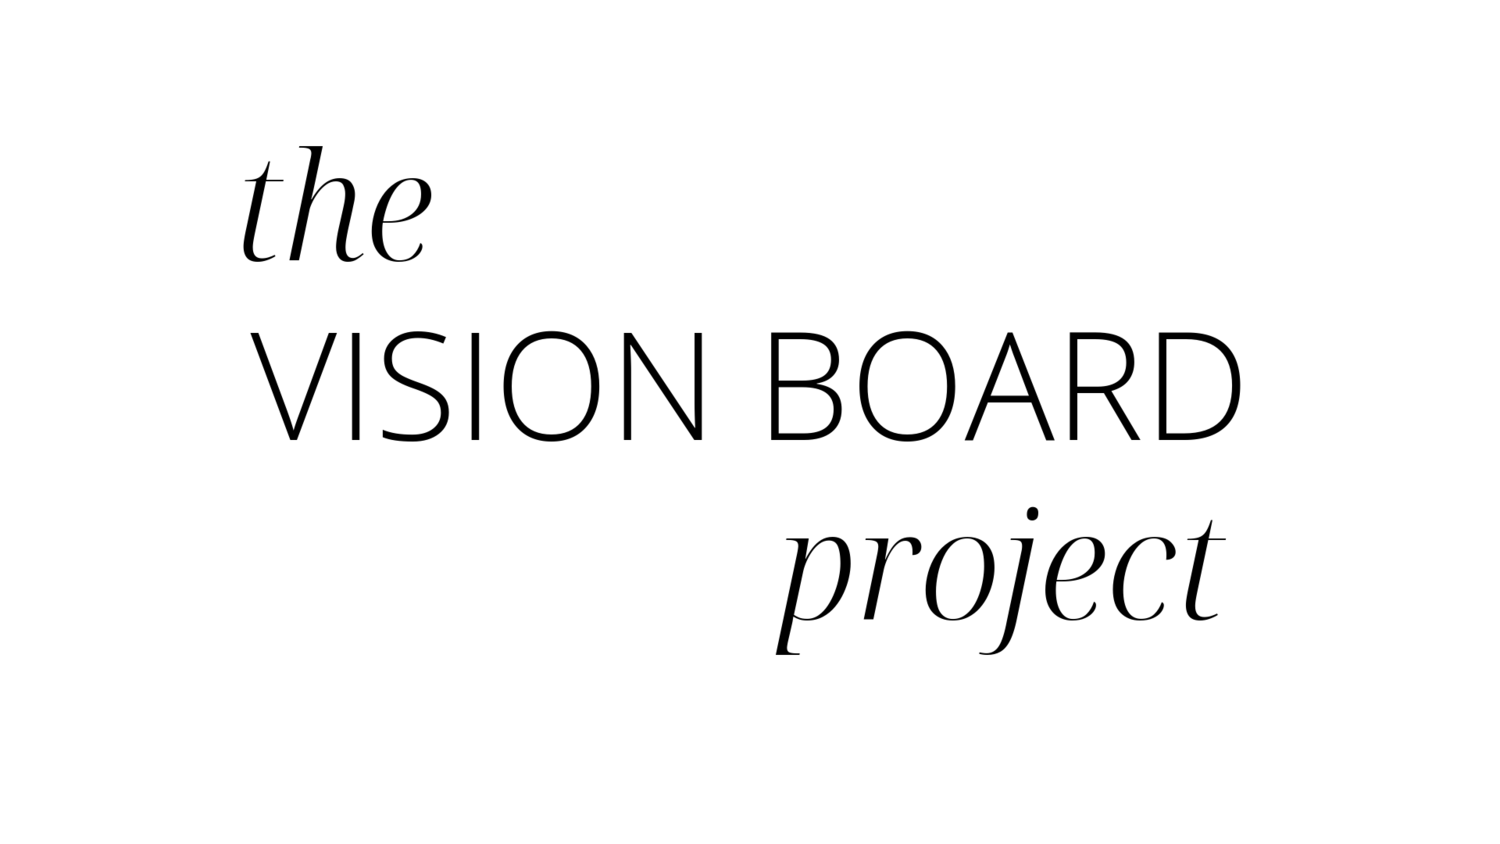 The Vision Board Project